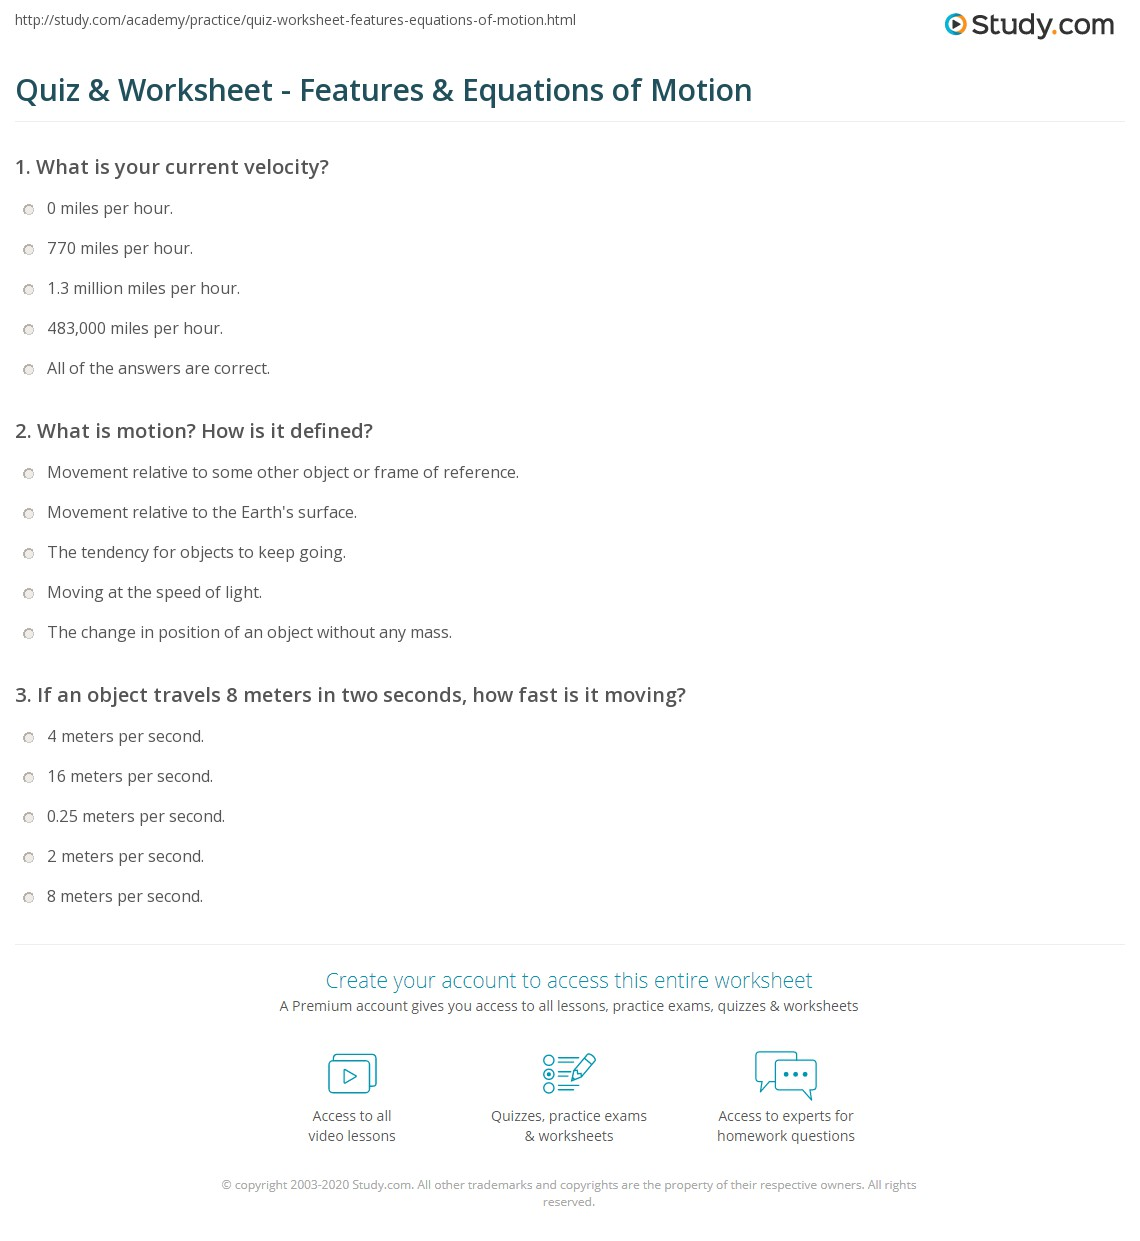 worksheet Motion Worksheets quiz worksheet features equations of motion study com print what is definition worksheet